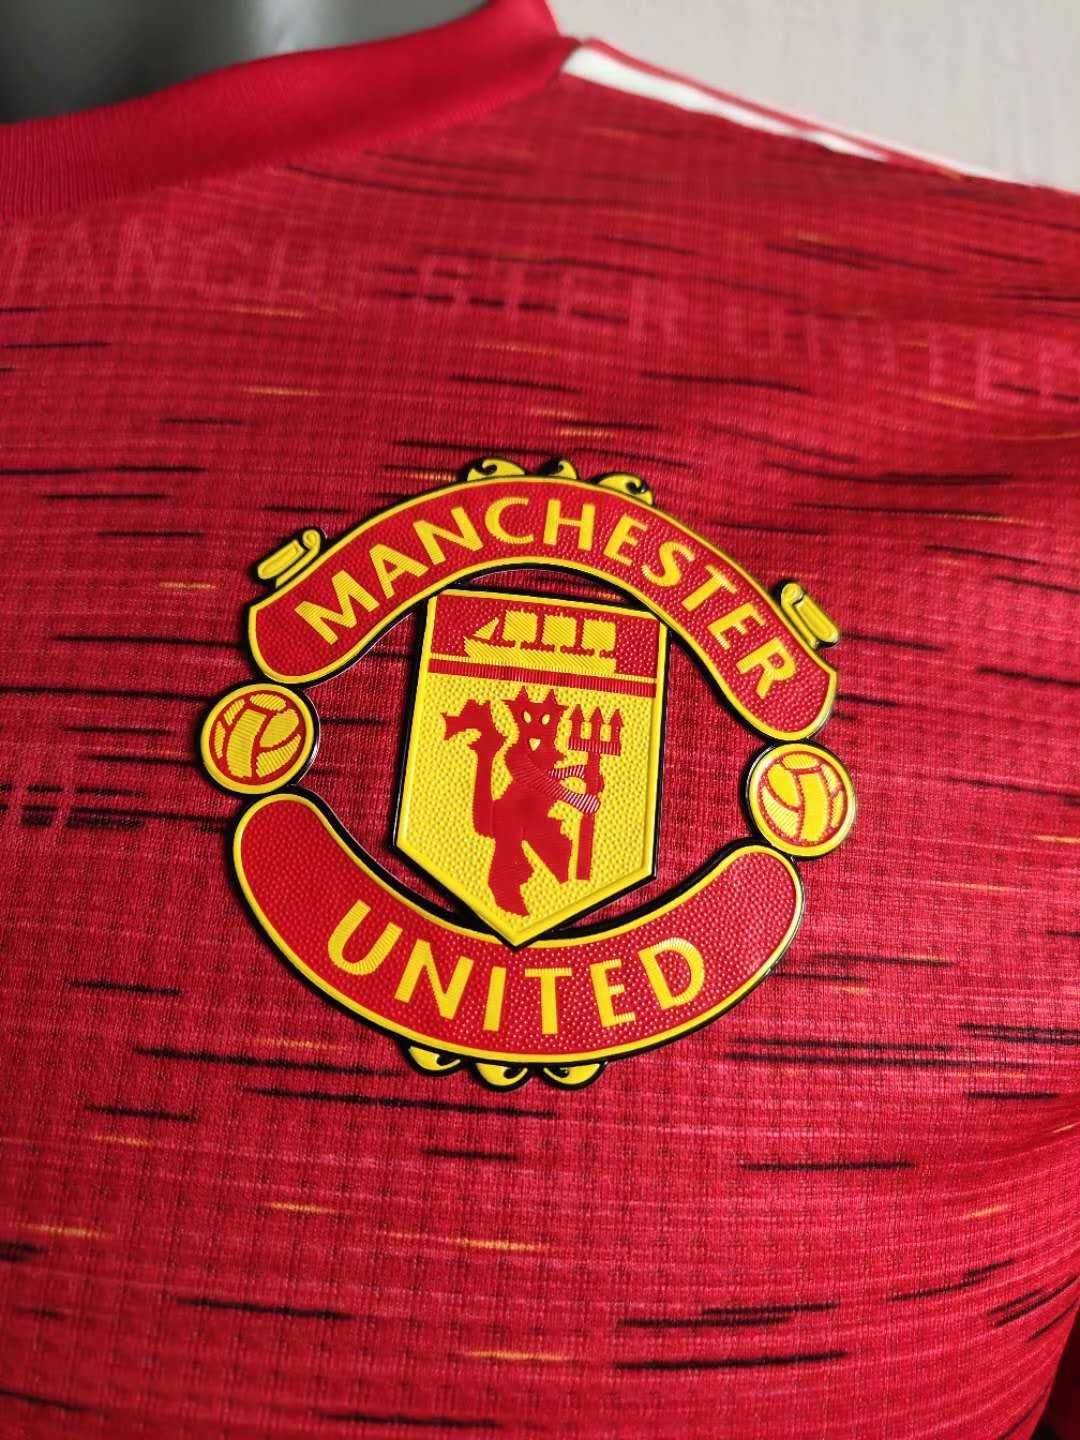 2020/21 Manchester United Home Red Men Soccer Jersey Shirt - Match